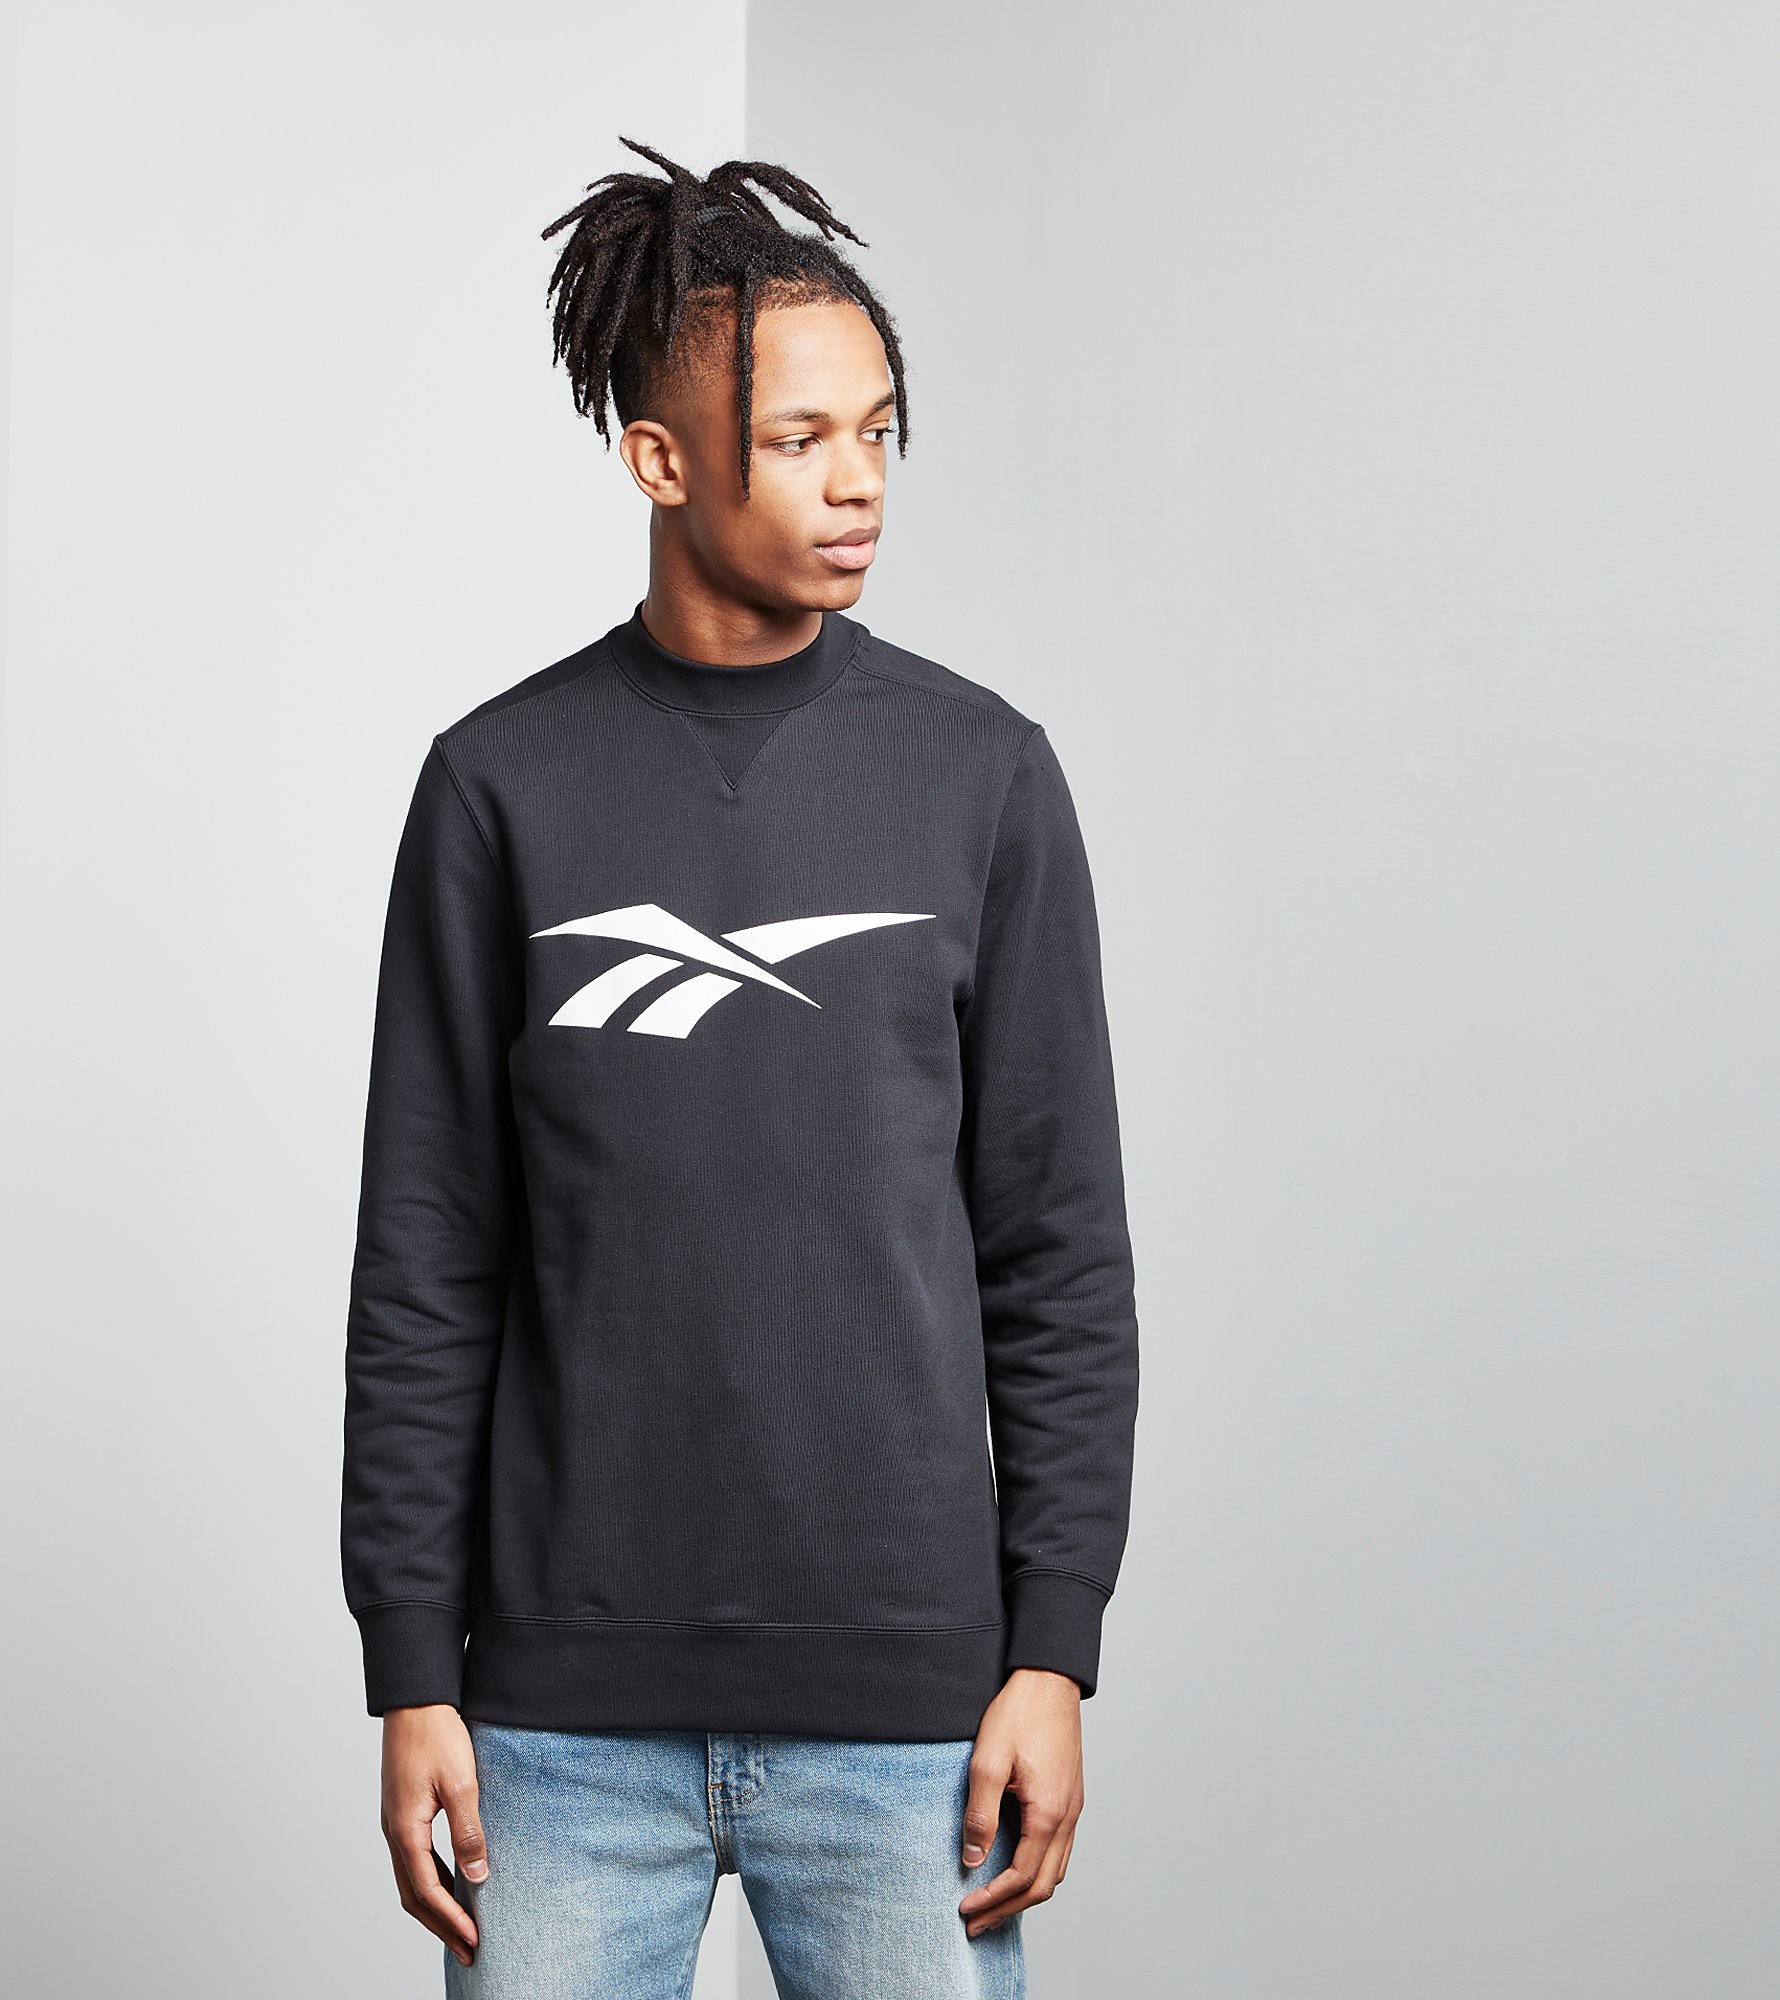 Reebok Crew Sweatshirt Vector Collection